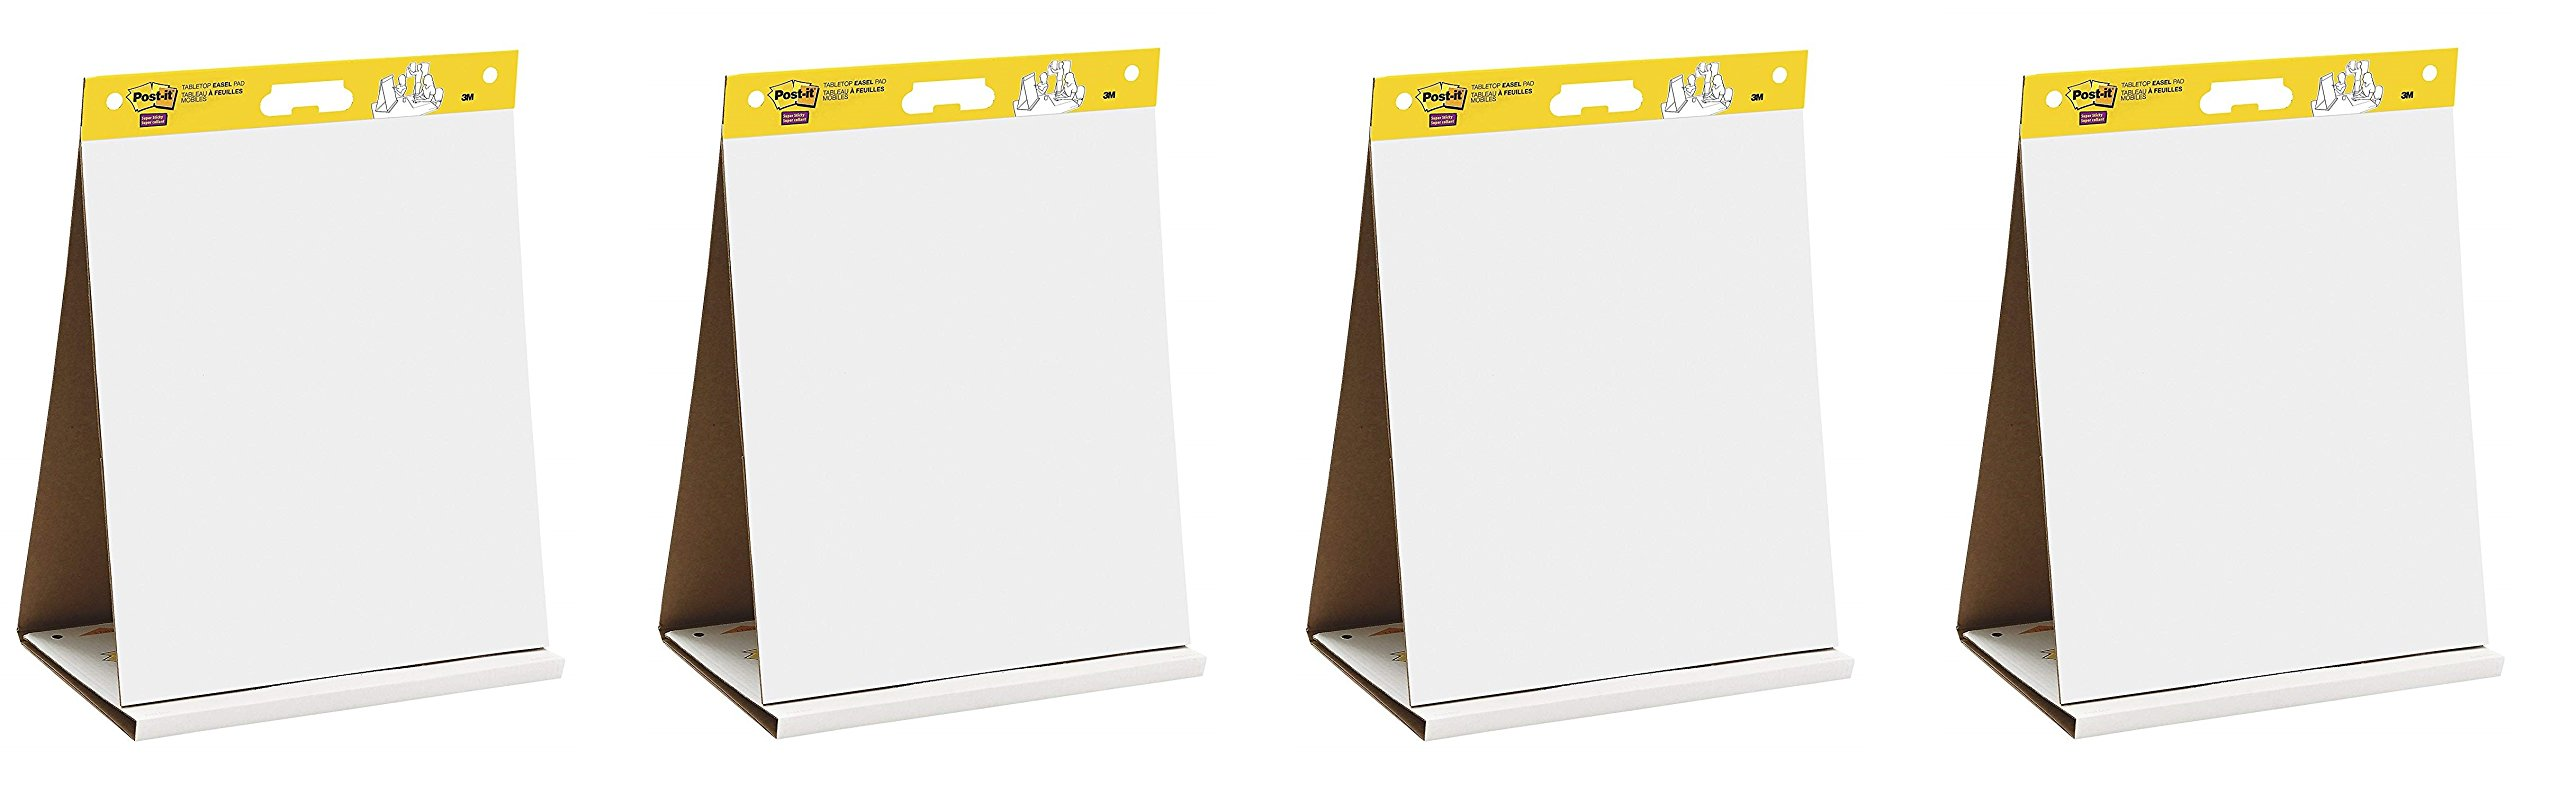 Post-it Super Sticky Tabletop Easel Pad, 20 x 23 inches, 20 Sheets/Pad, 1 Pad (563 DE), Portable White Premium Self Stick Flip Chart Paper, Dry Erase Panel, Built-in Easel Stand (Pack of 4) by Post-it